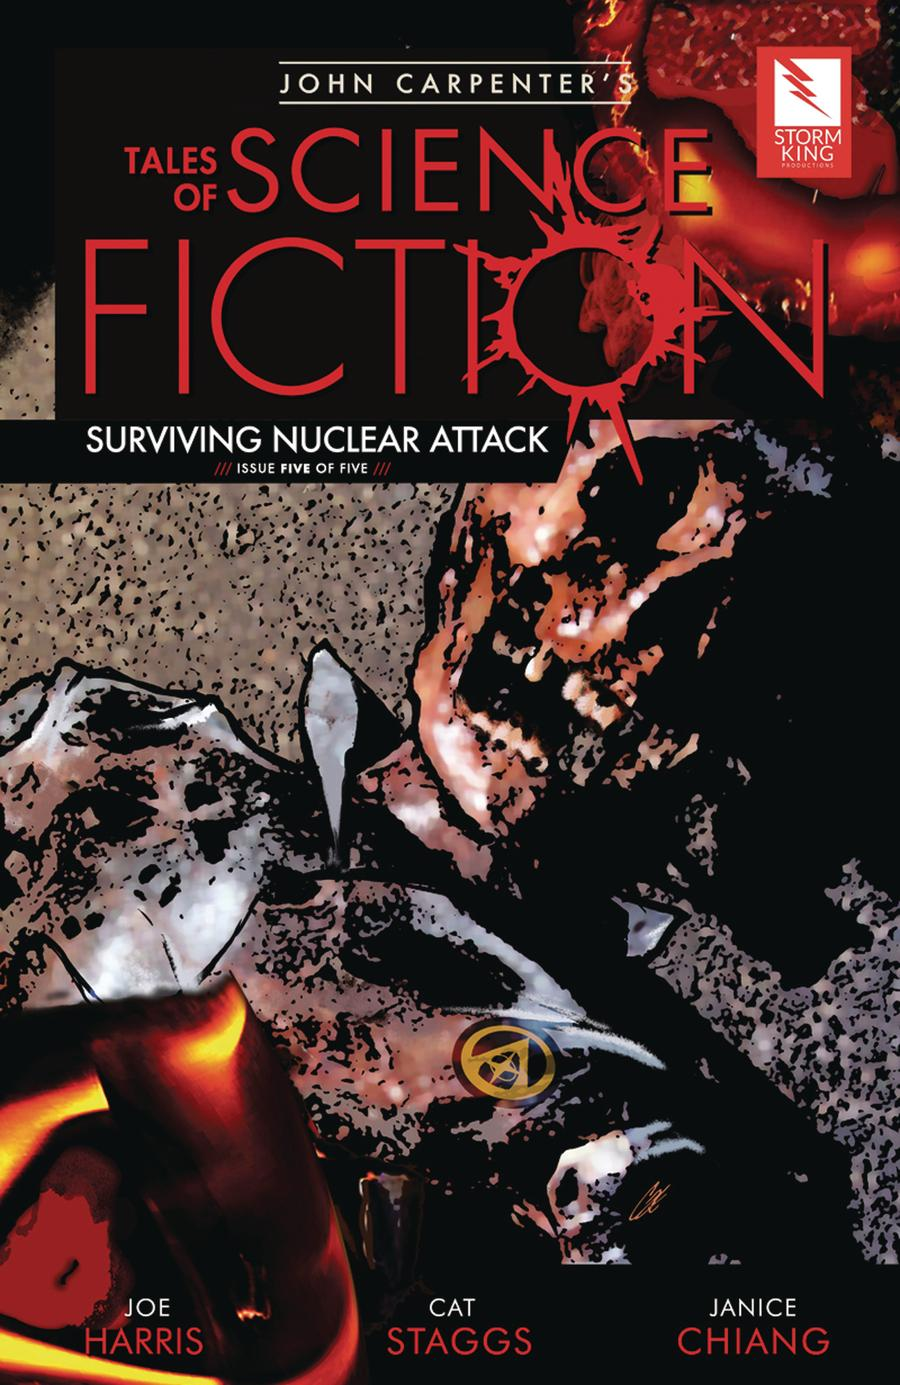 John Carpenters Tales Of Science Fiction Surviving Nuclear Attack #5